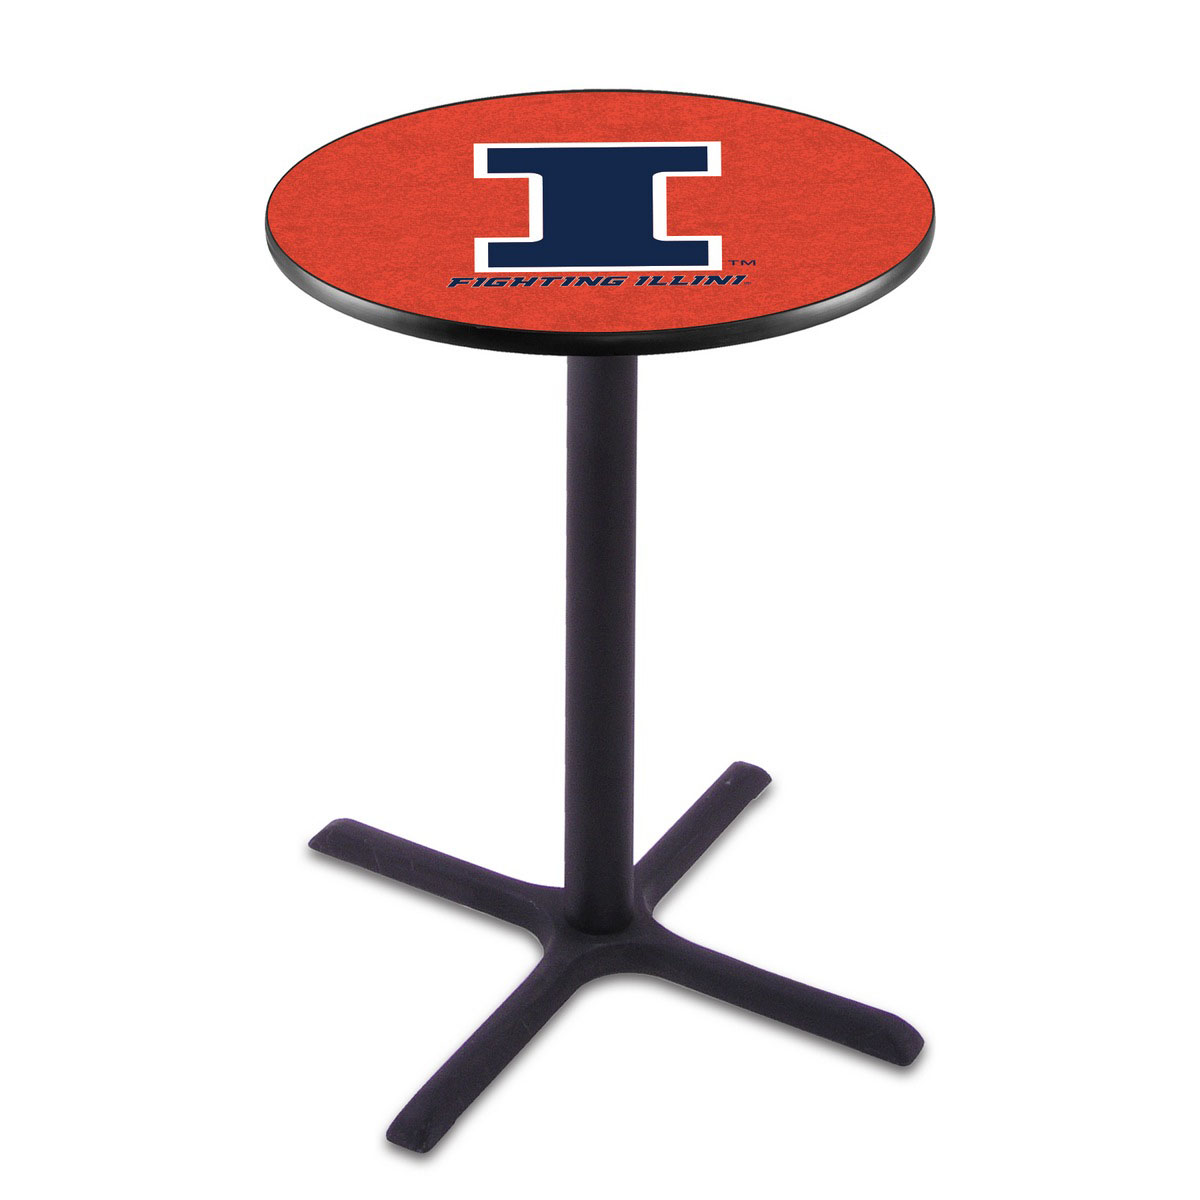 Ultimate Illinois Wrinkle Pub Table Product Photo